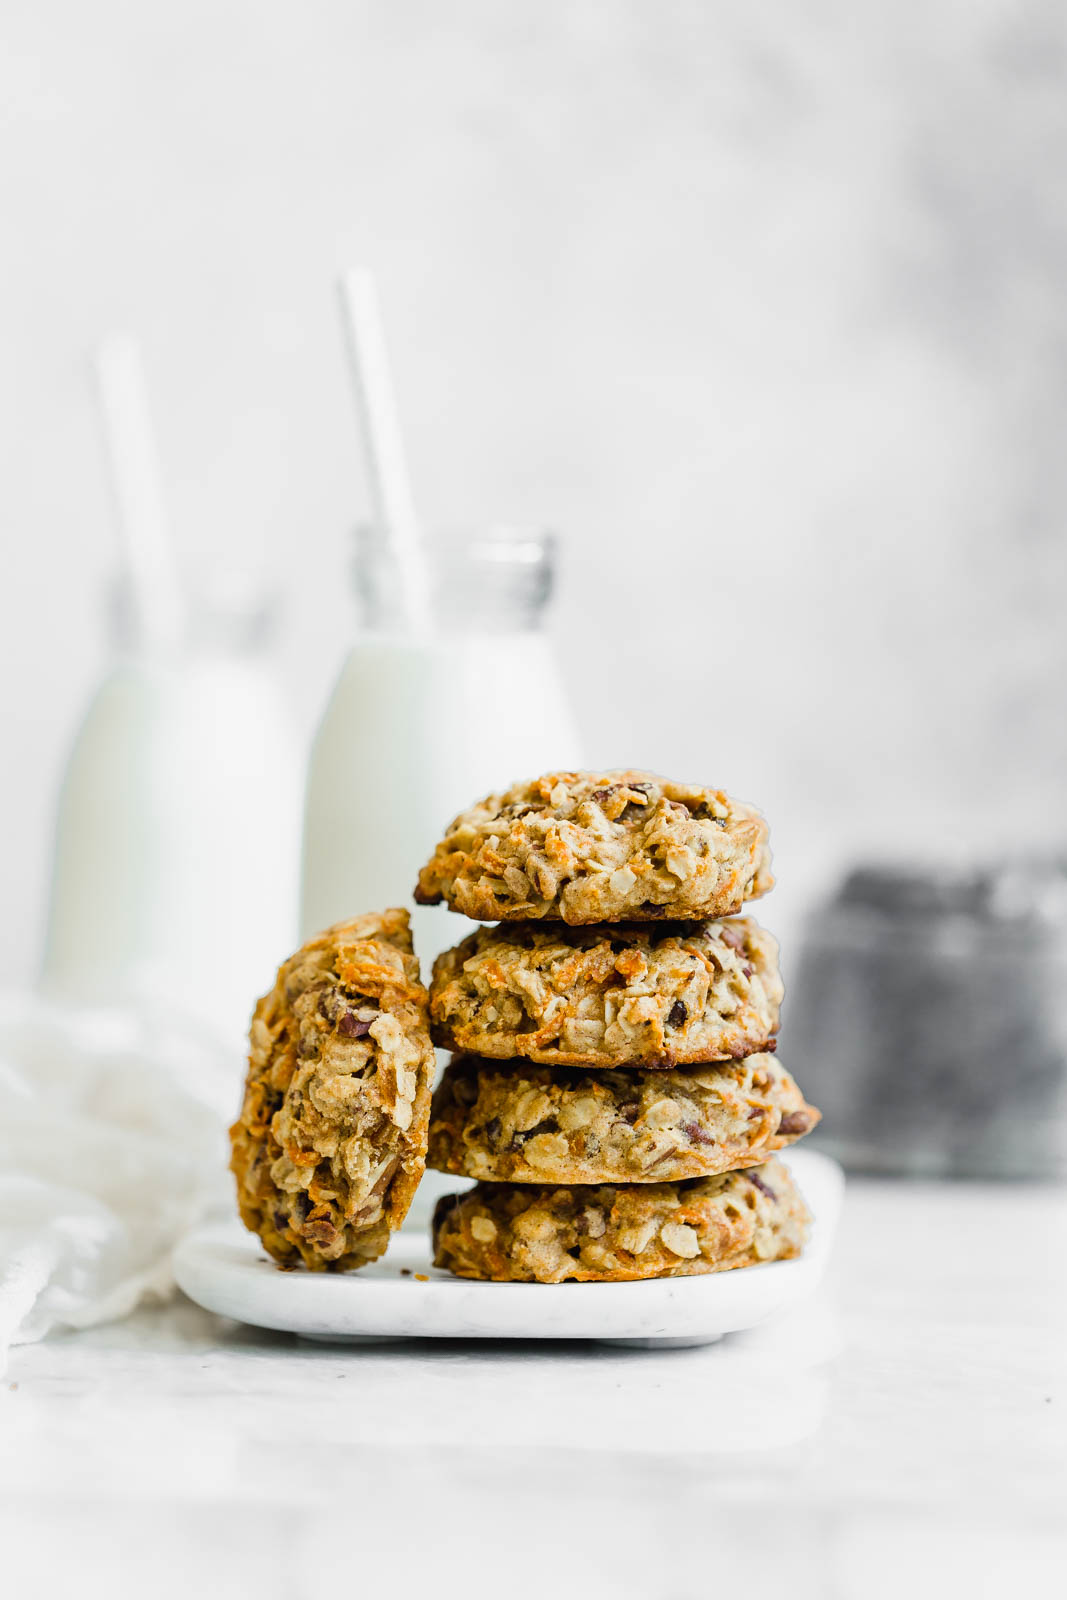 Healthy Carrot Cake Breakfast Cookies Broma Bakery Kue By Hbahar Pal